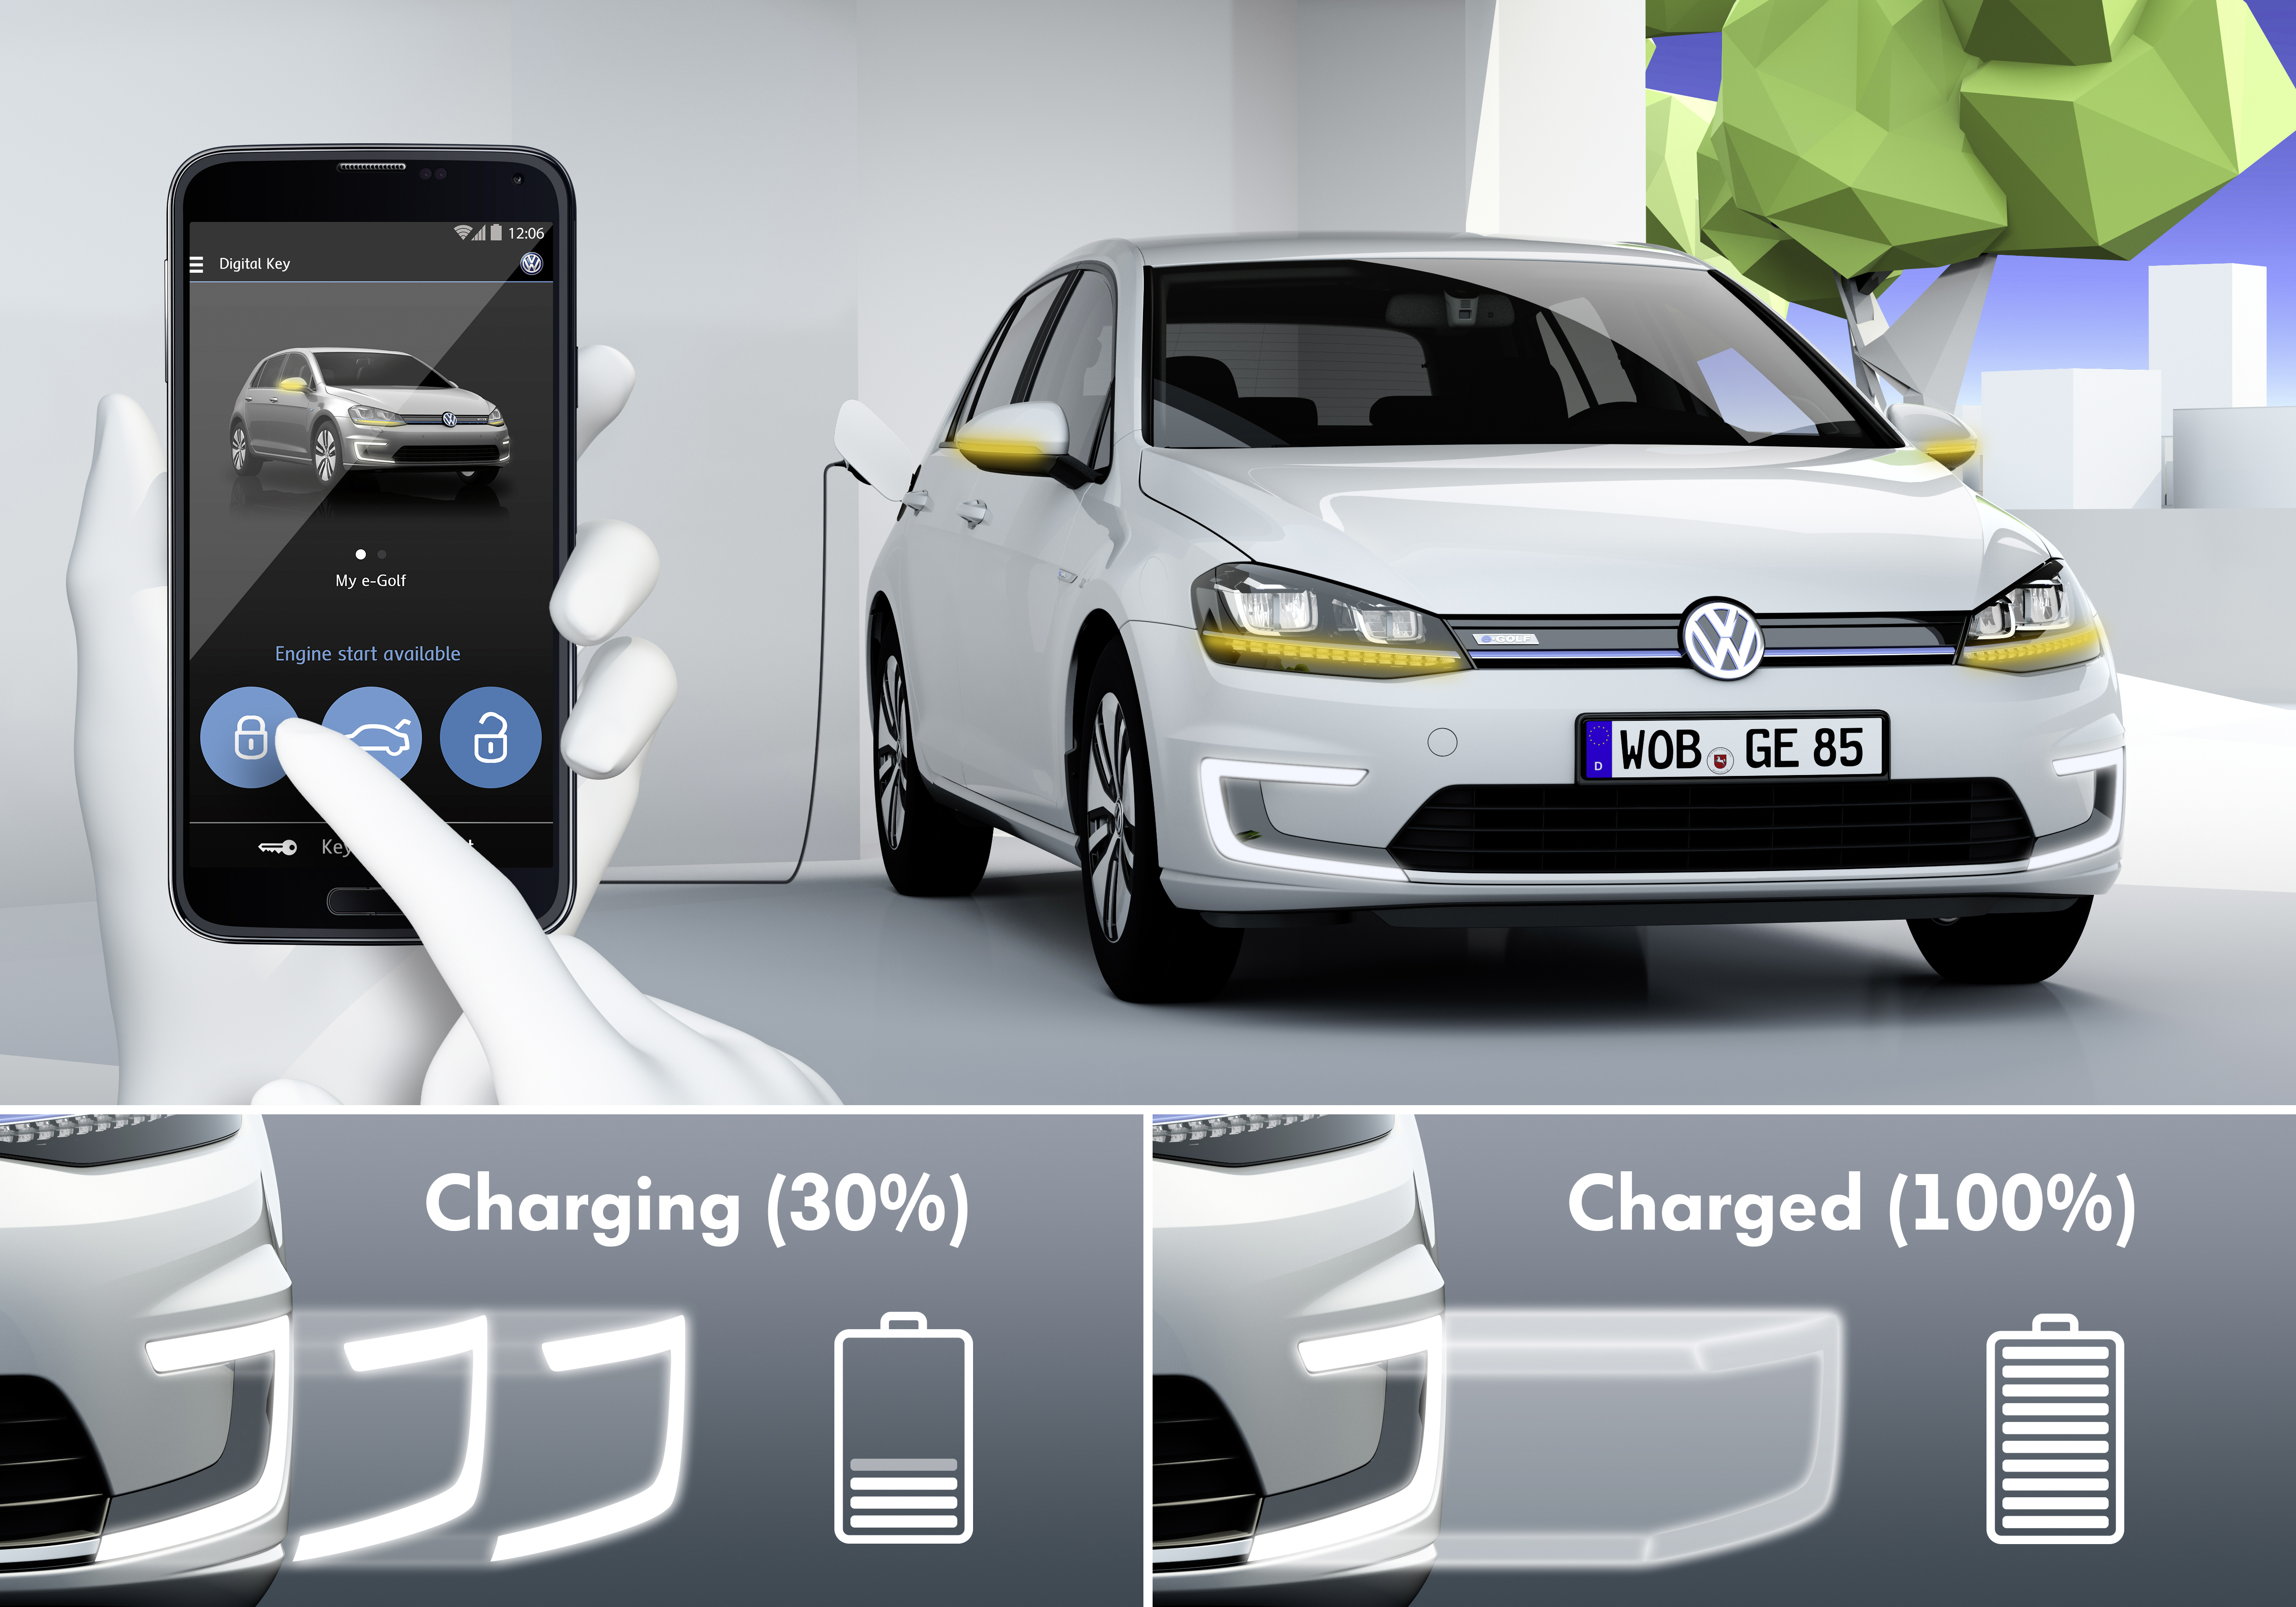 vegas hits volkswagen mass photos volkswagens hit to control latest news gesture s las ces production after technology